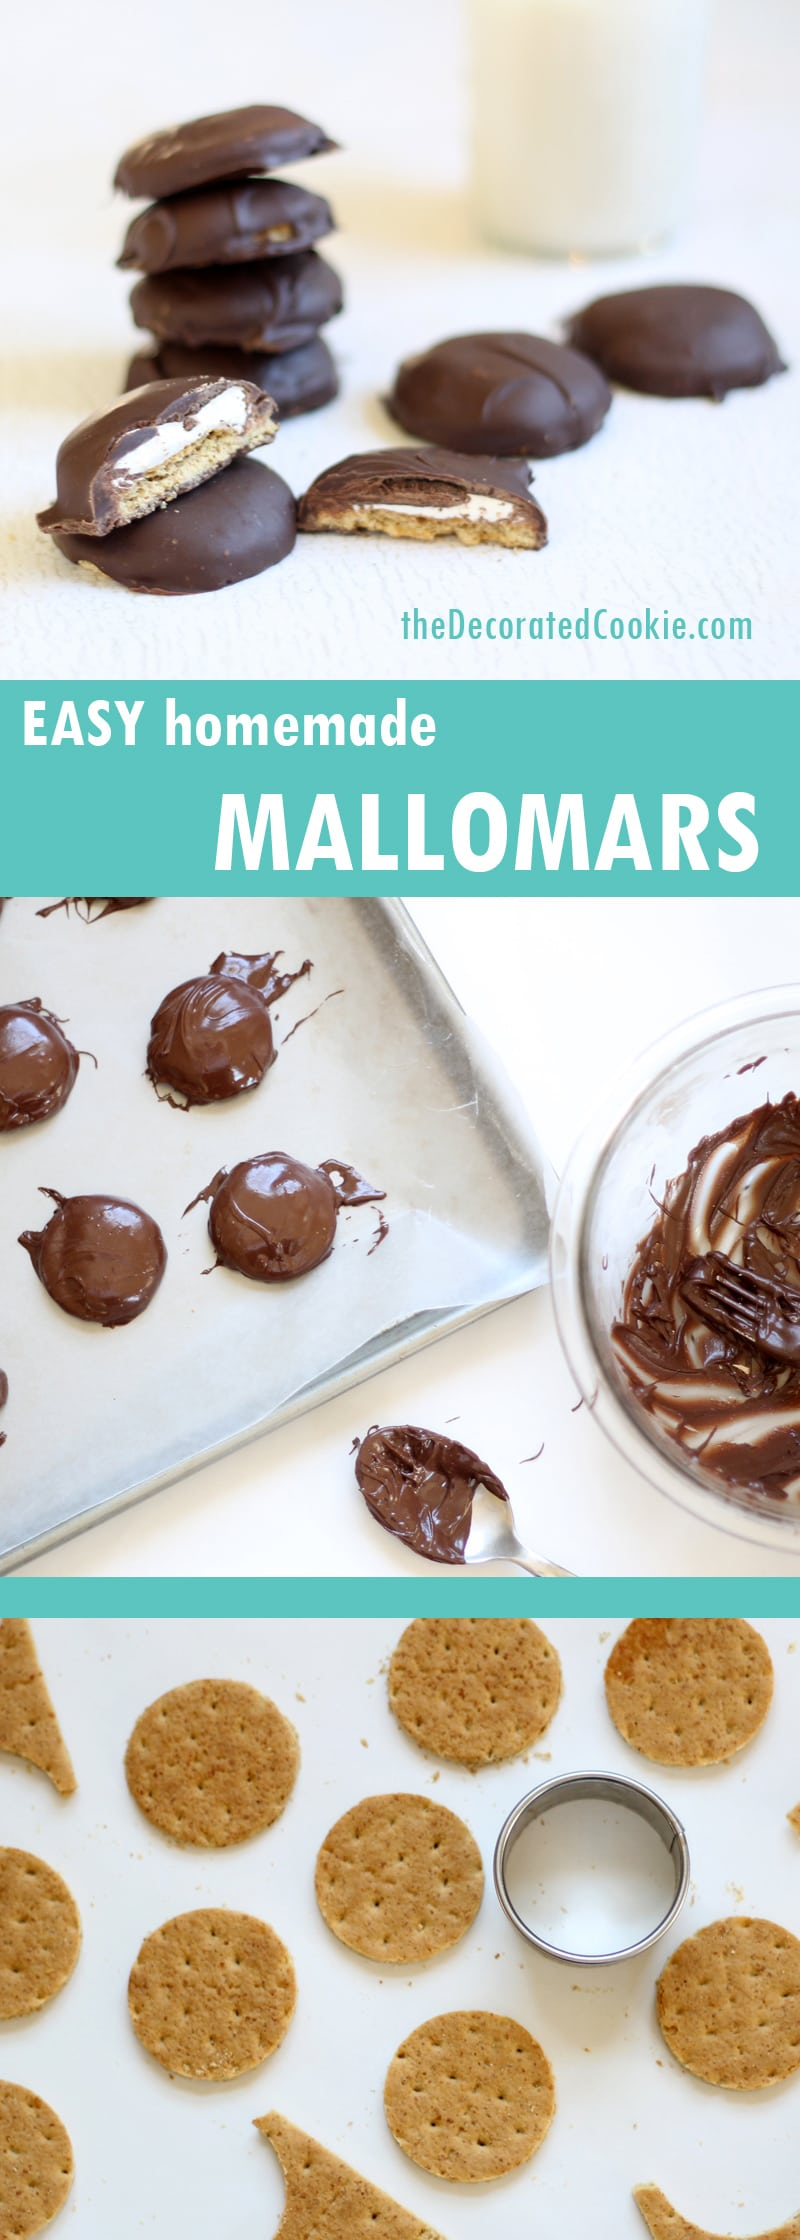 3-ingredient homemade Mallomars